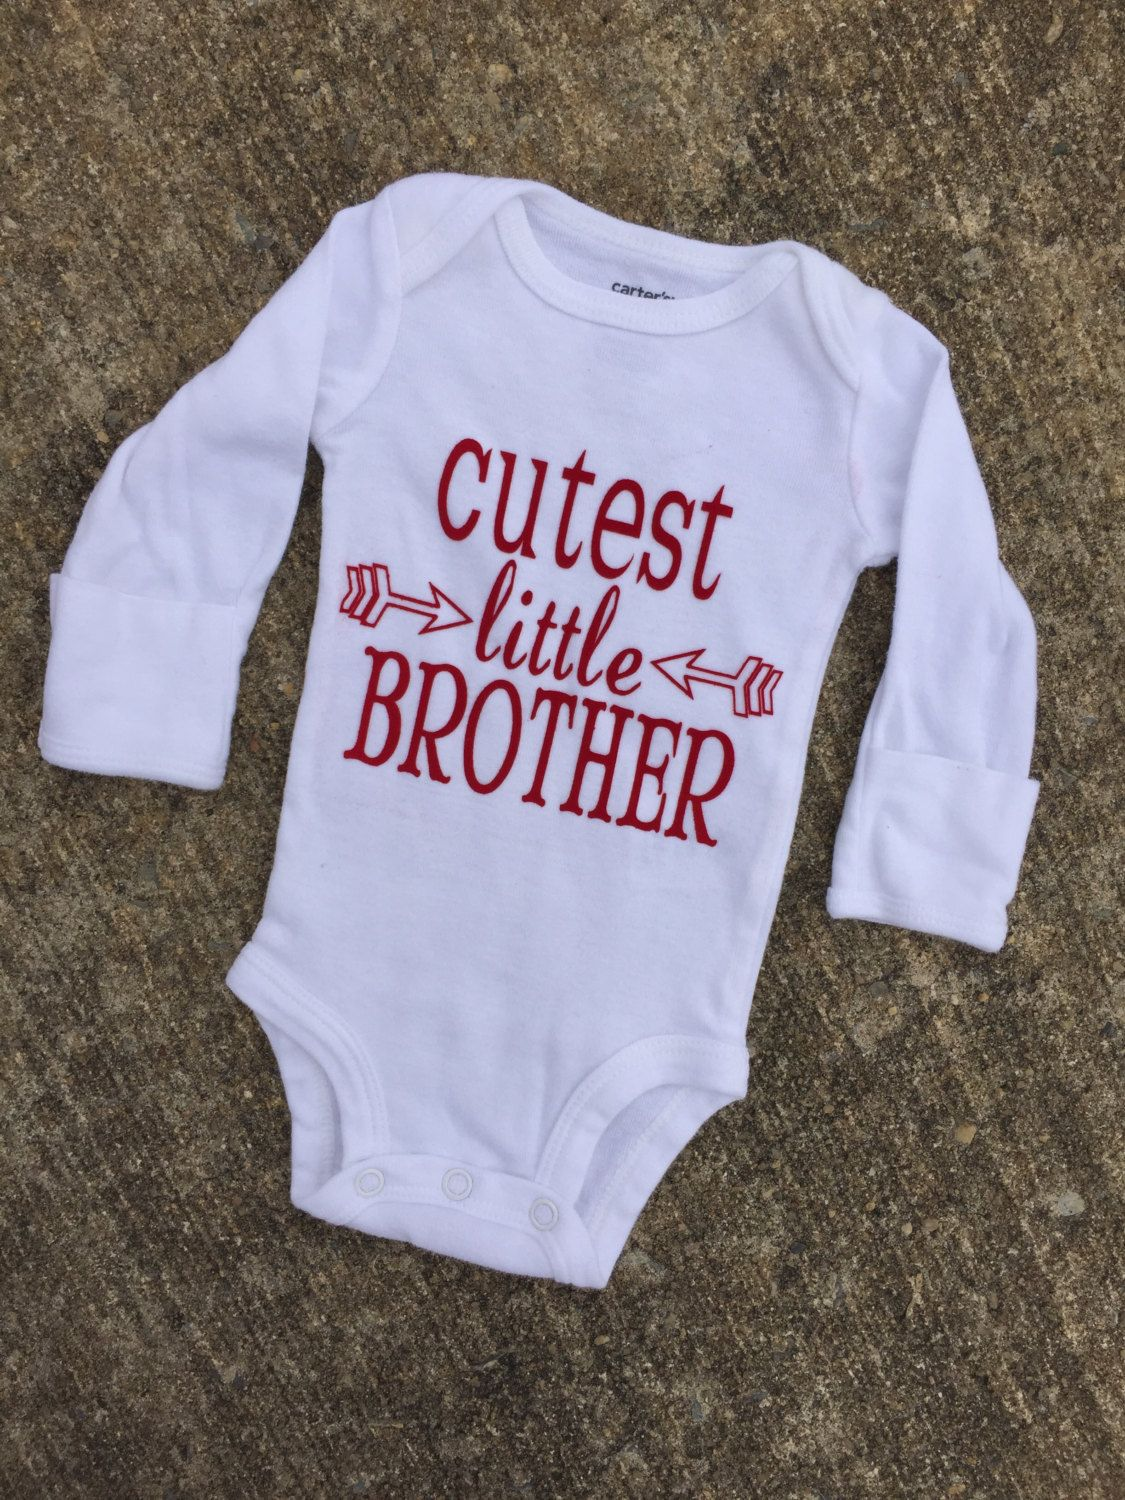 Cute Personalized Name Baby Blocks BOY One Piece Creeper Infant Baby Bodysuit